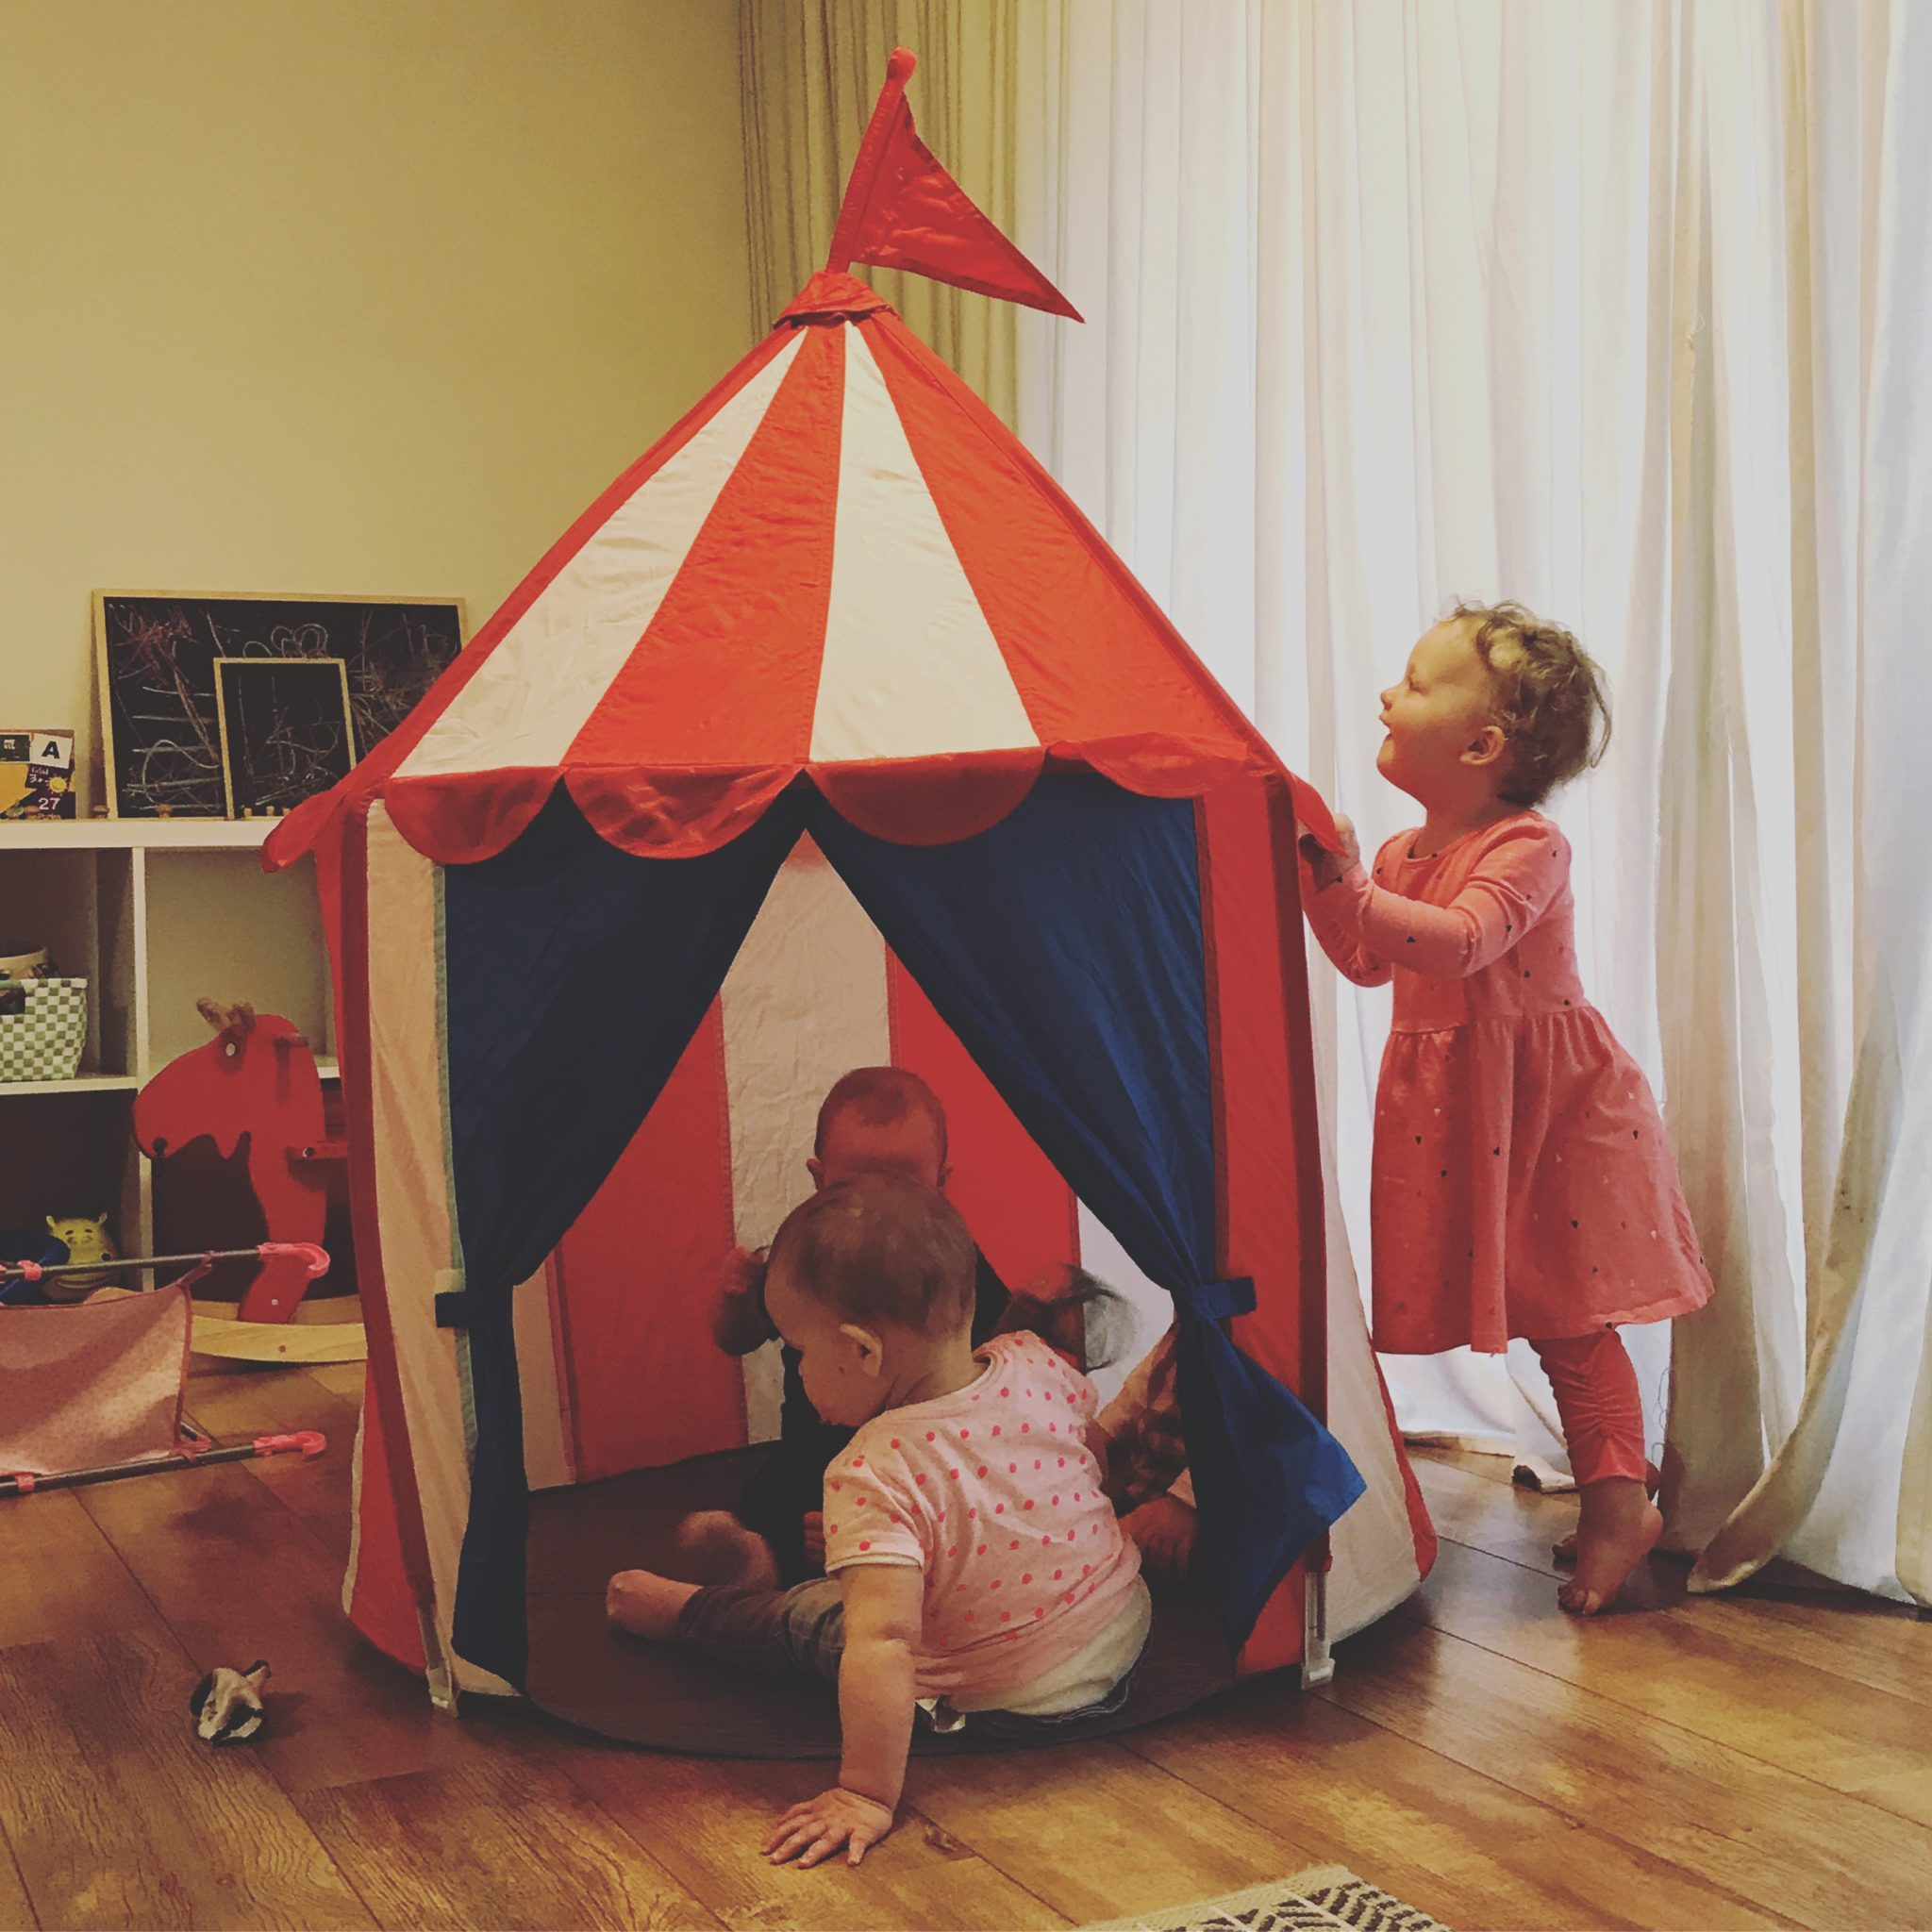 Our Services Are Available For Wedding Childcare Private Babysitting During The Events And Family Celebrations